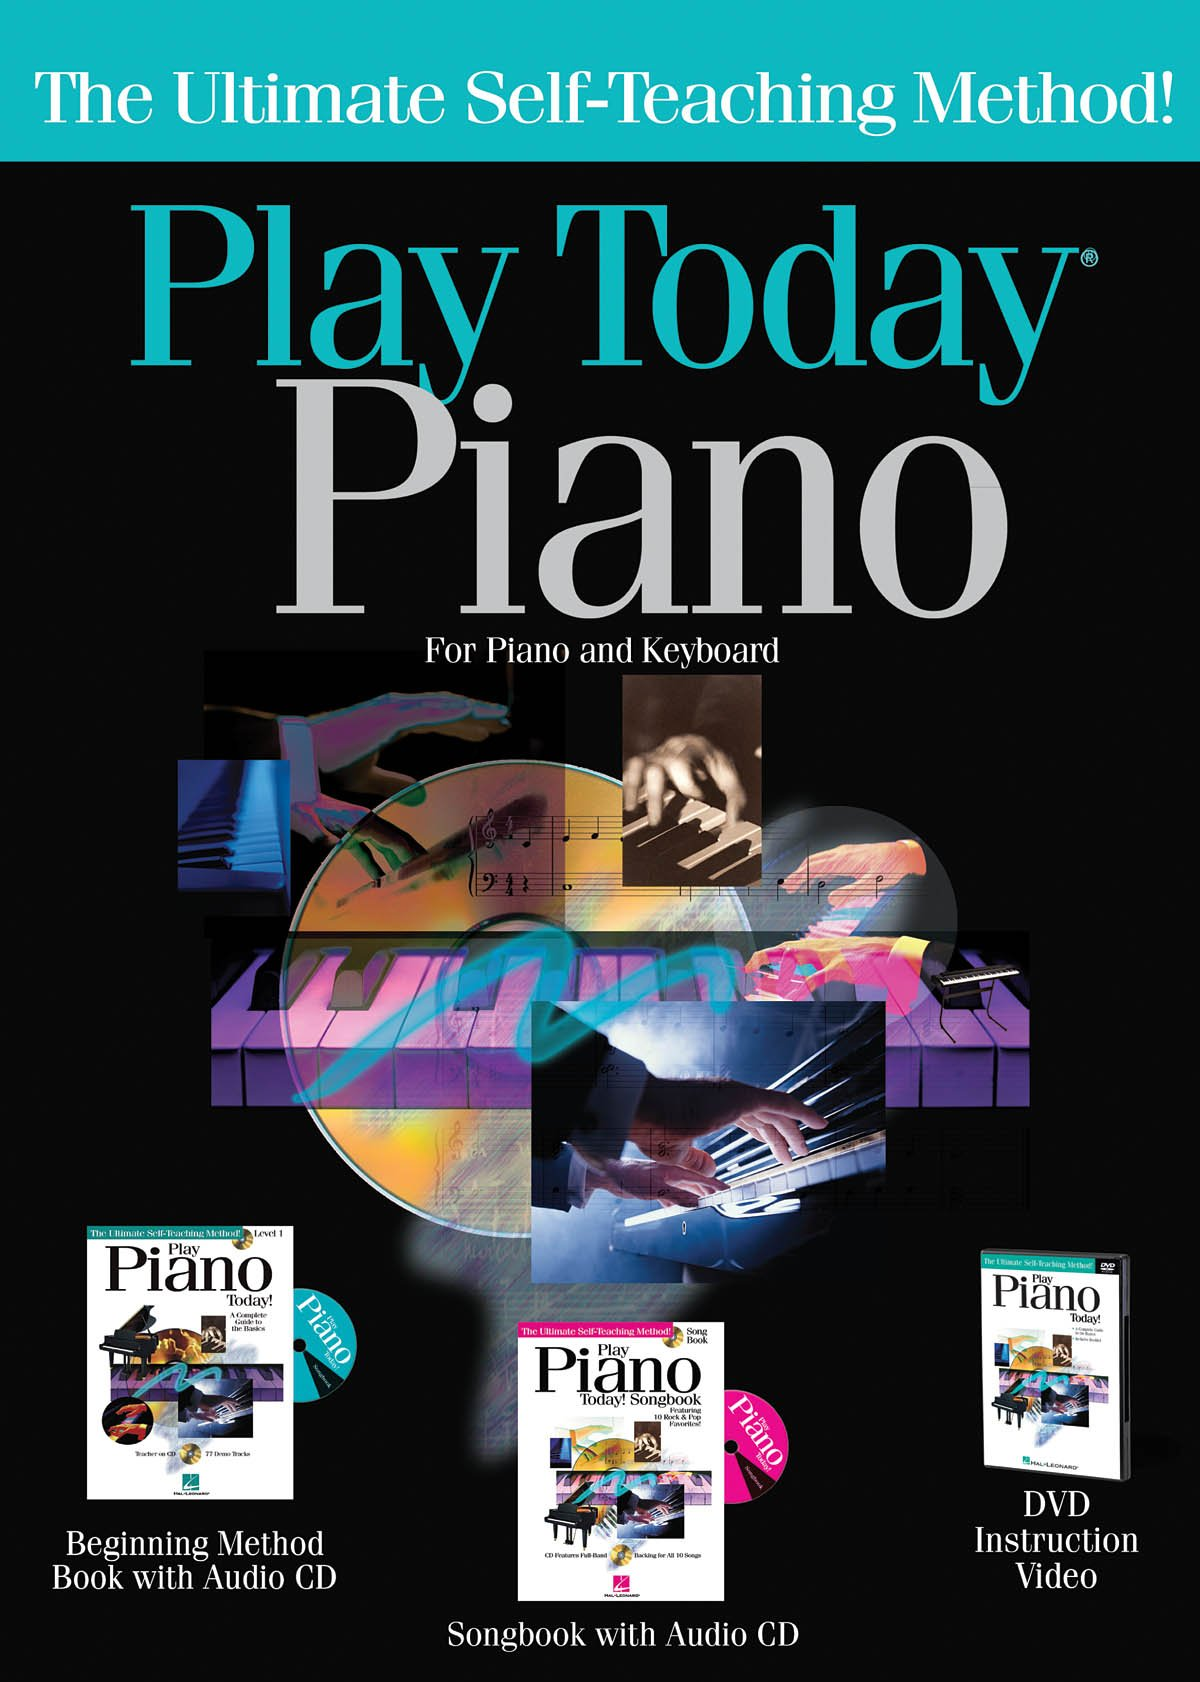 Hal Leonard 702997 Play Piano Today Complete Kit with Method Book/CD Songbook/CD and DVD - Box-Hang Tab by Hal Leonard